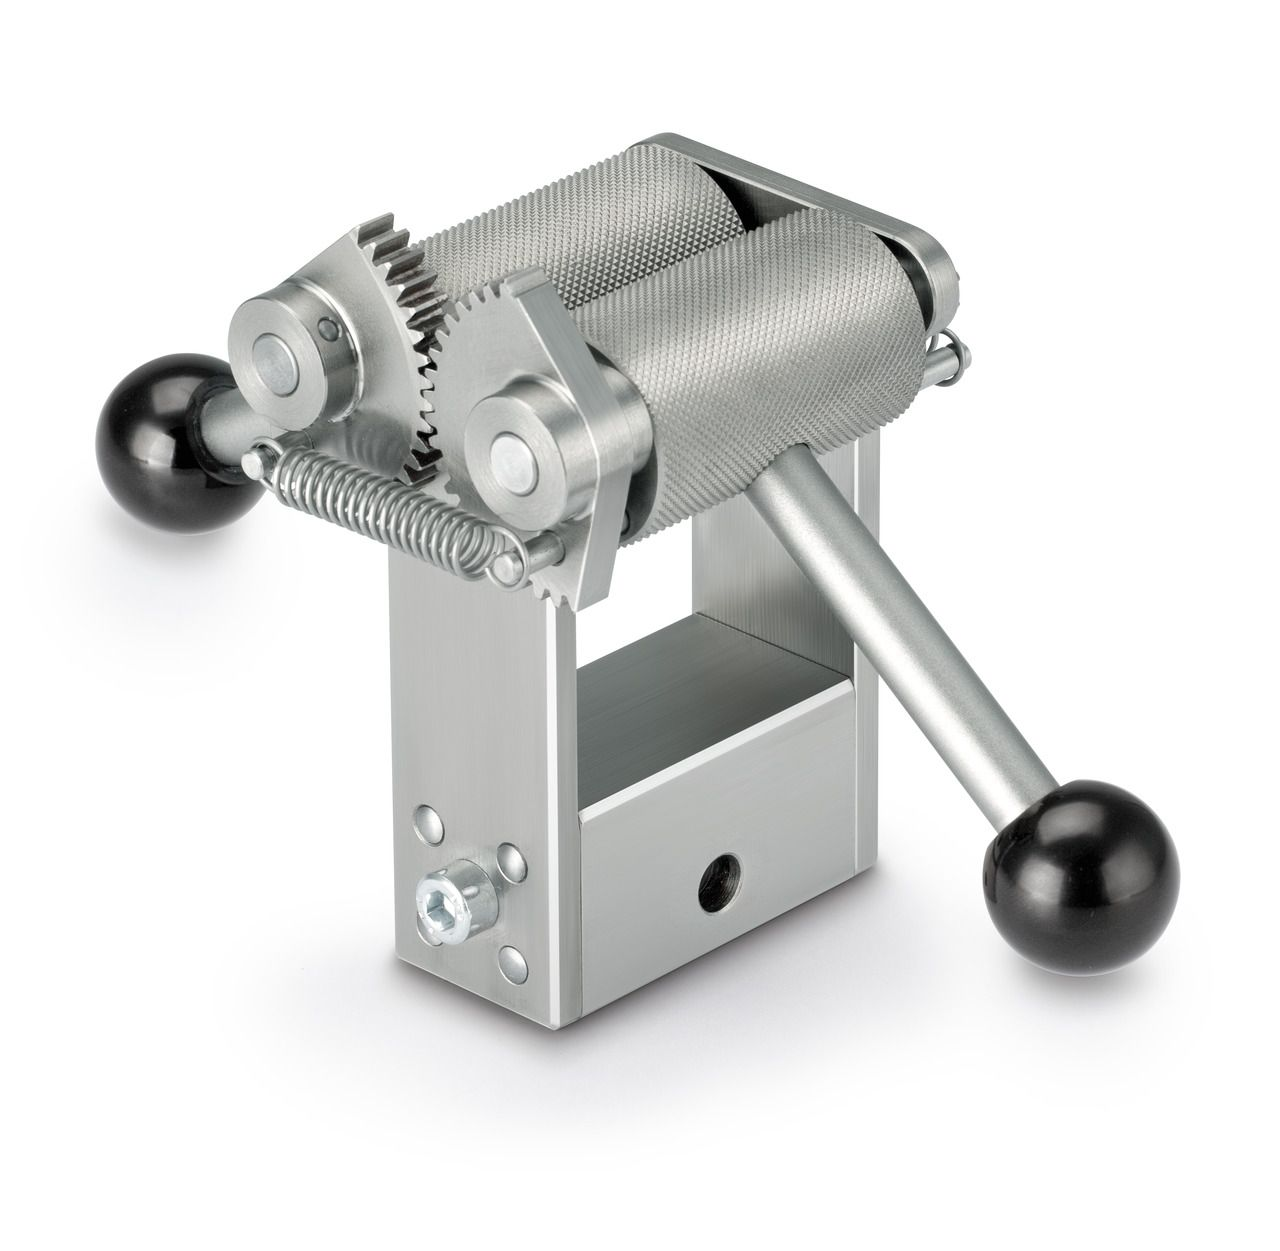 AD 9200 Roller Tension Clamp